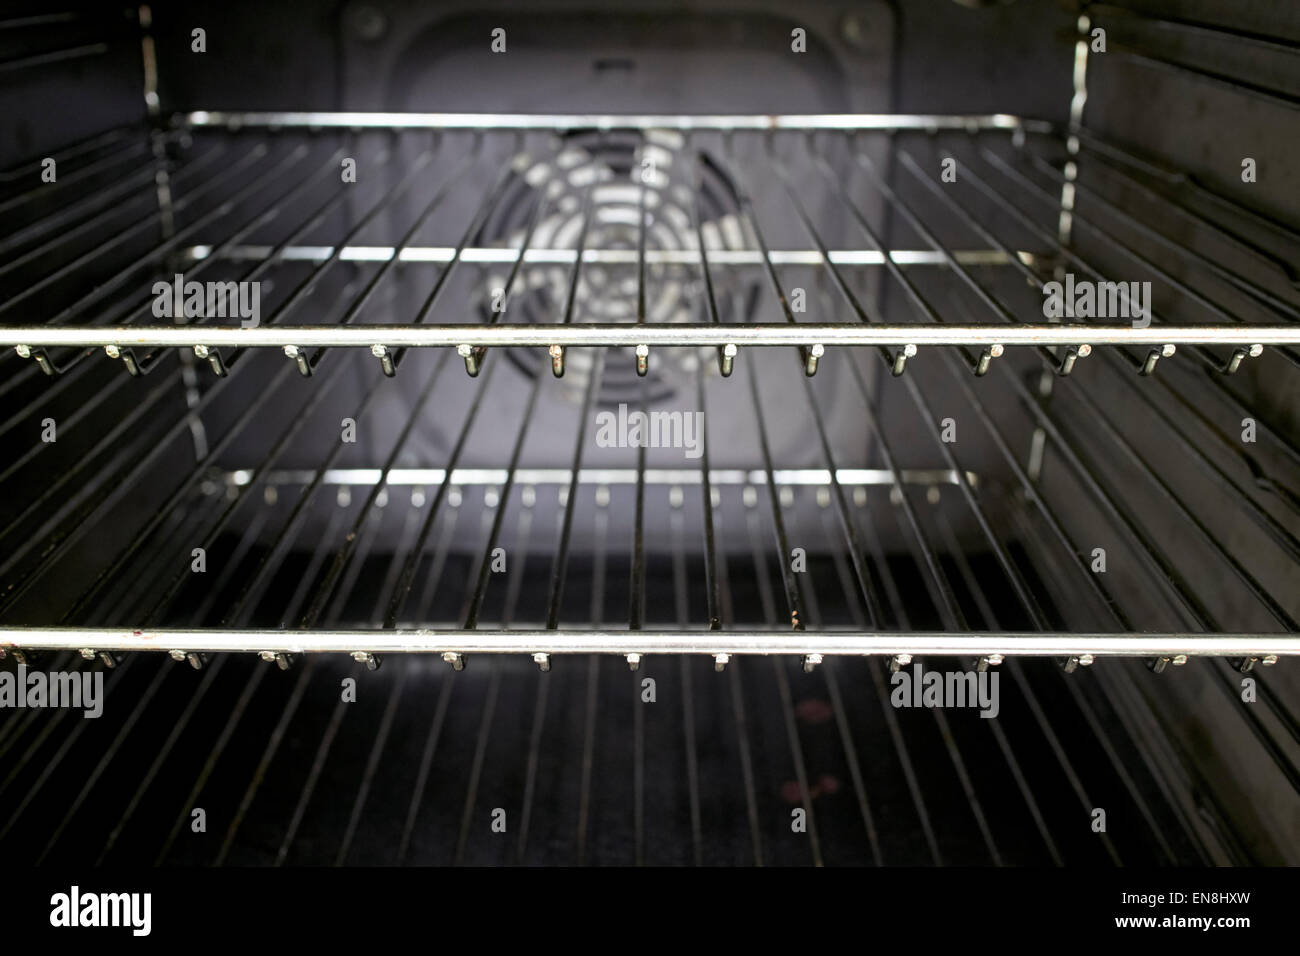 Oven Racks Stock Photos & Oven Racks Stock Images - Alamy